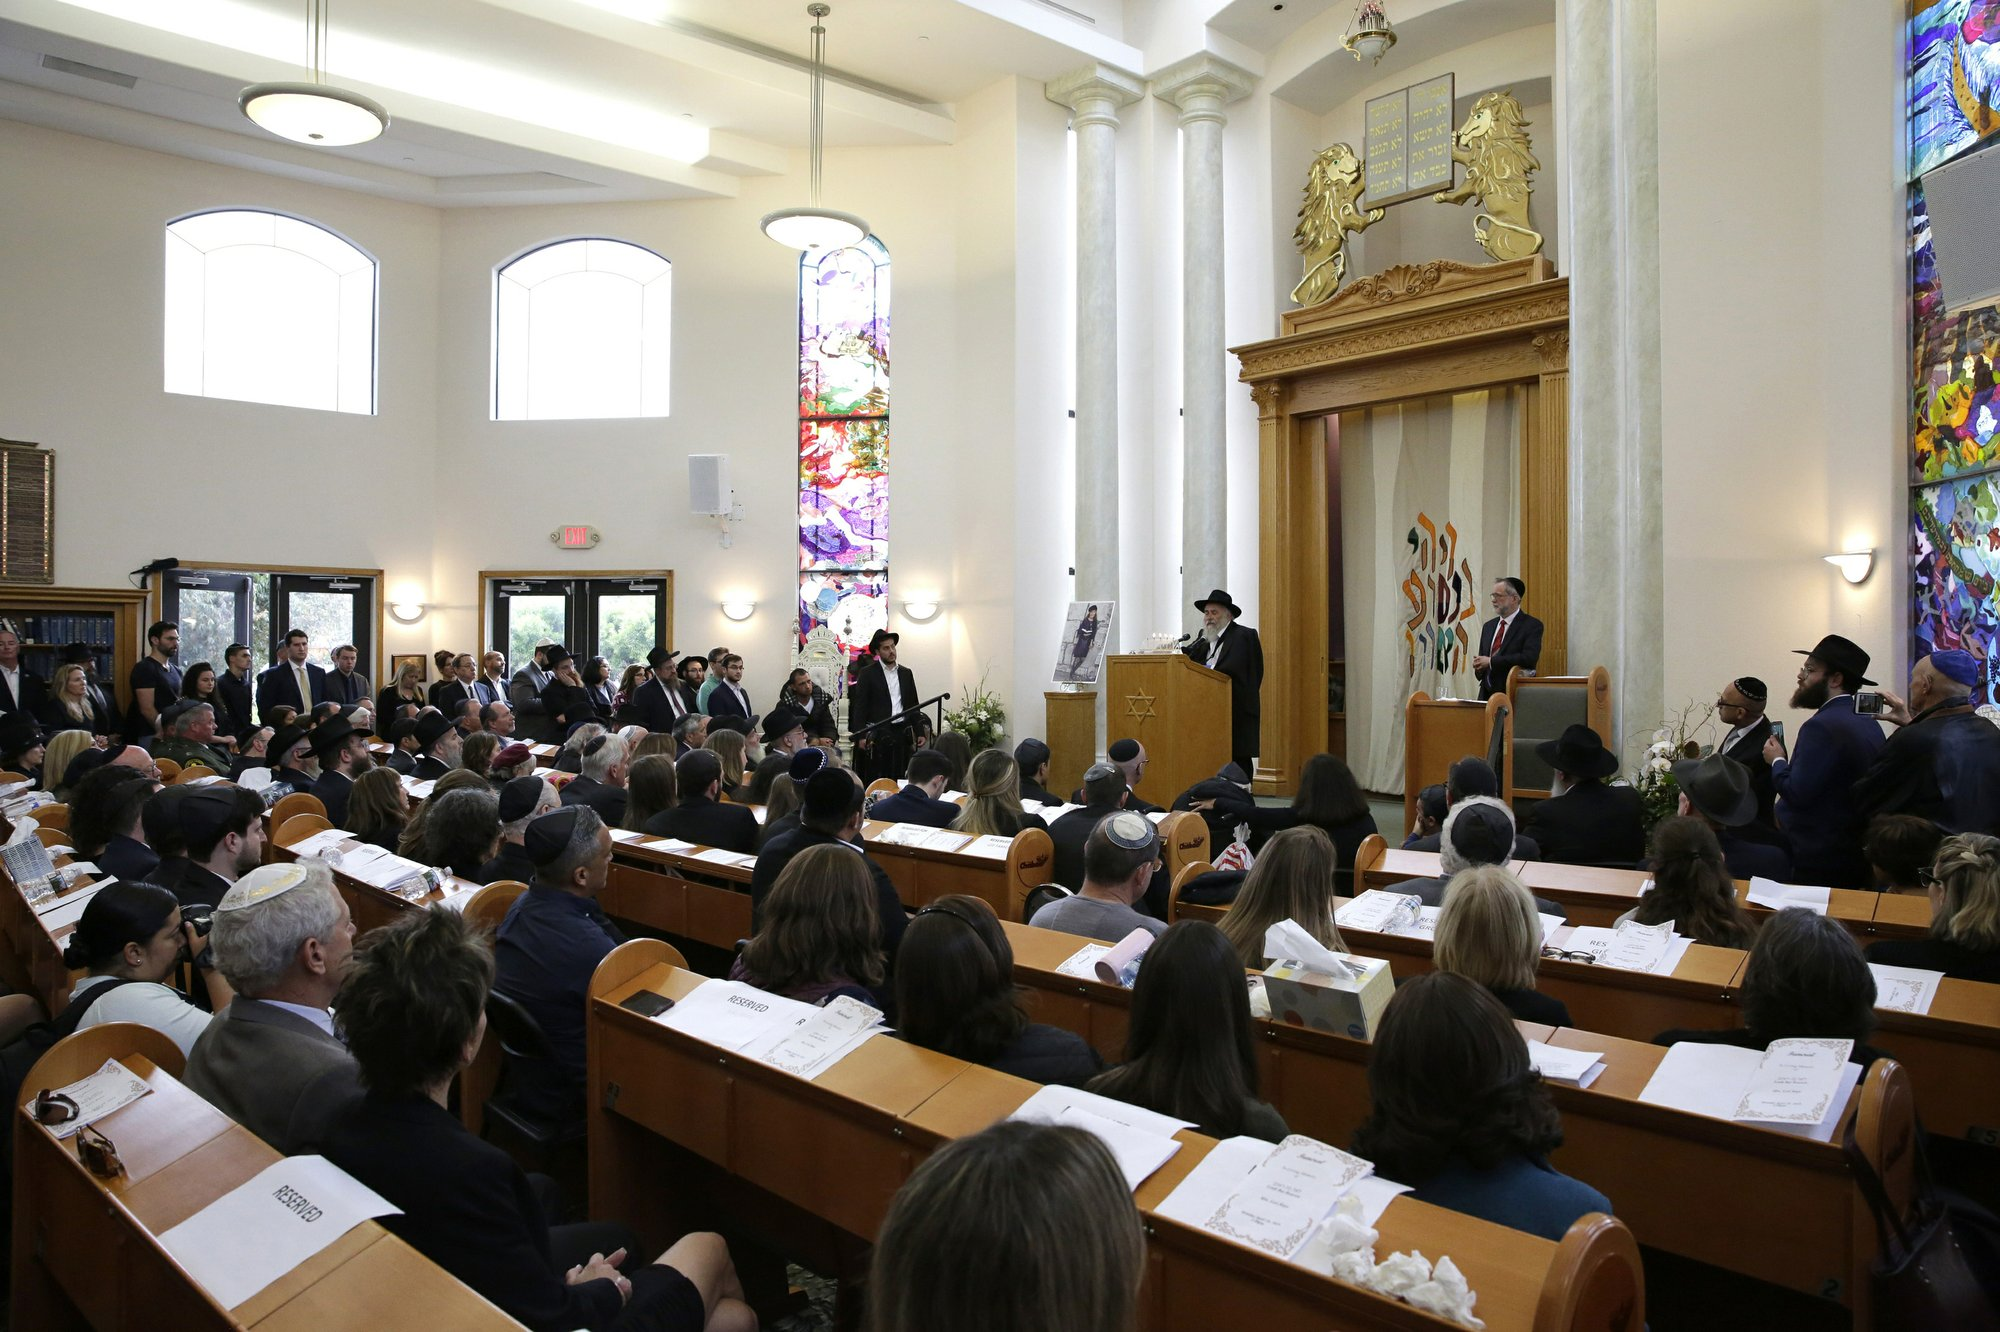 Chabad of Poway Memorial Service